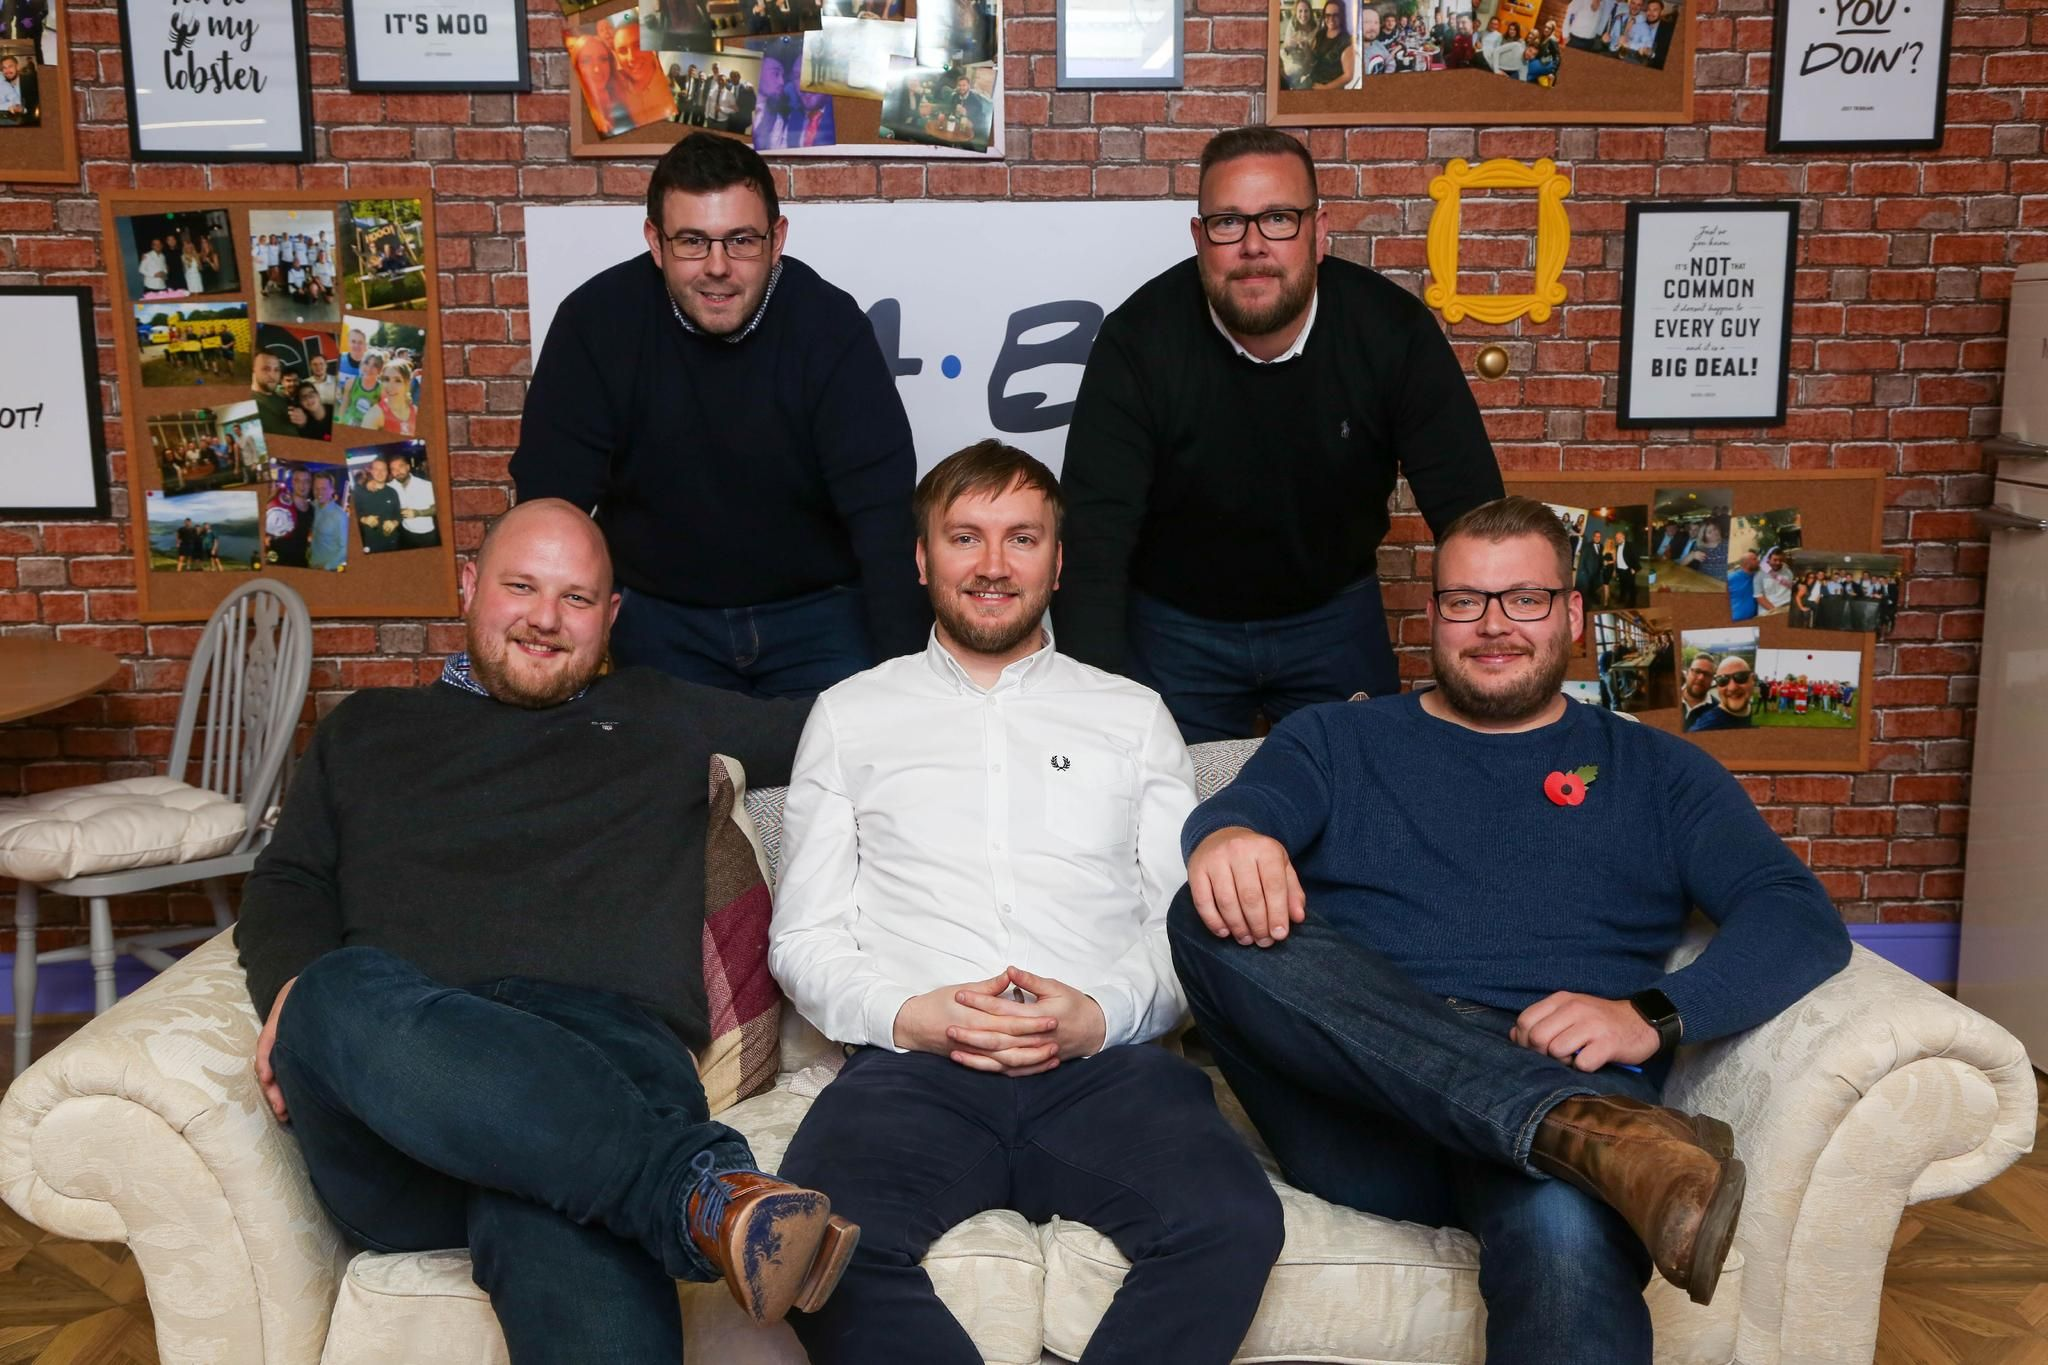 Mabo Expand To Over 50 Staff And A New Office